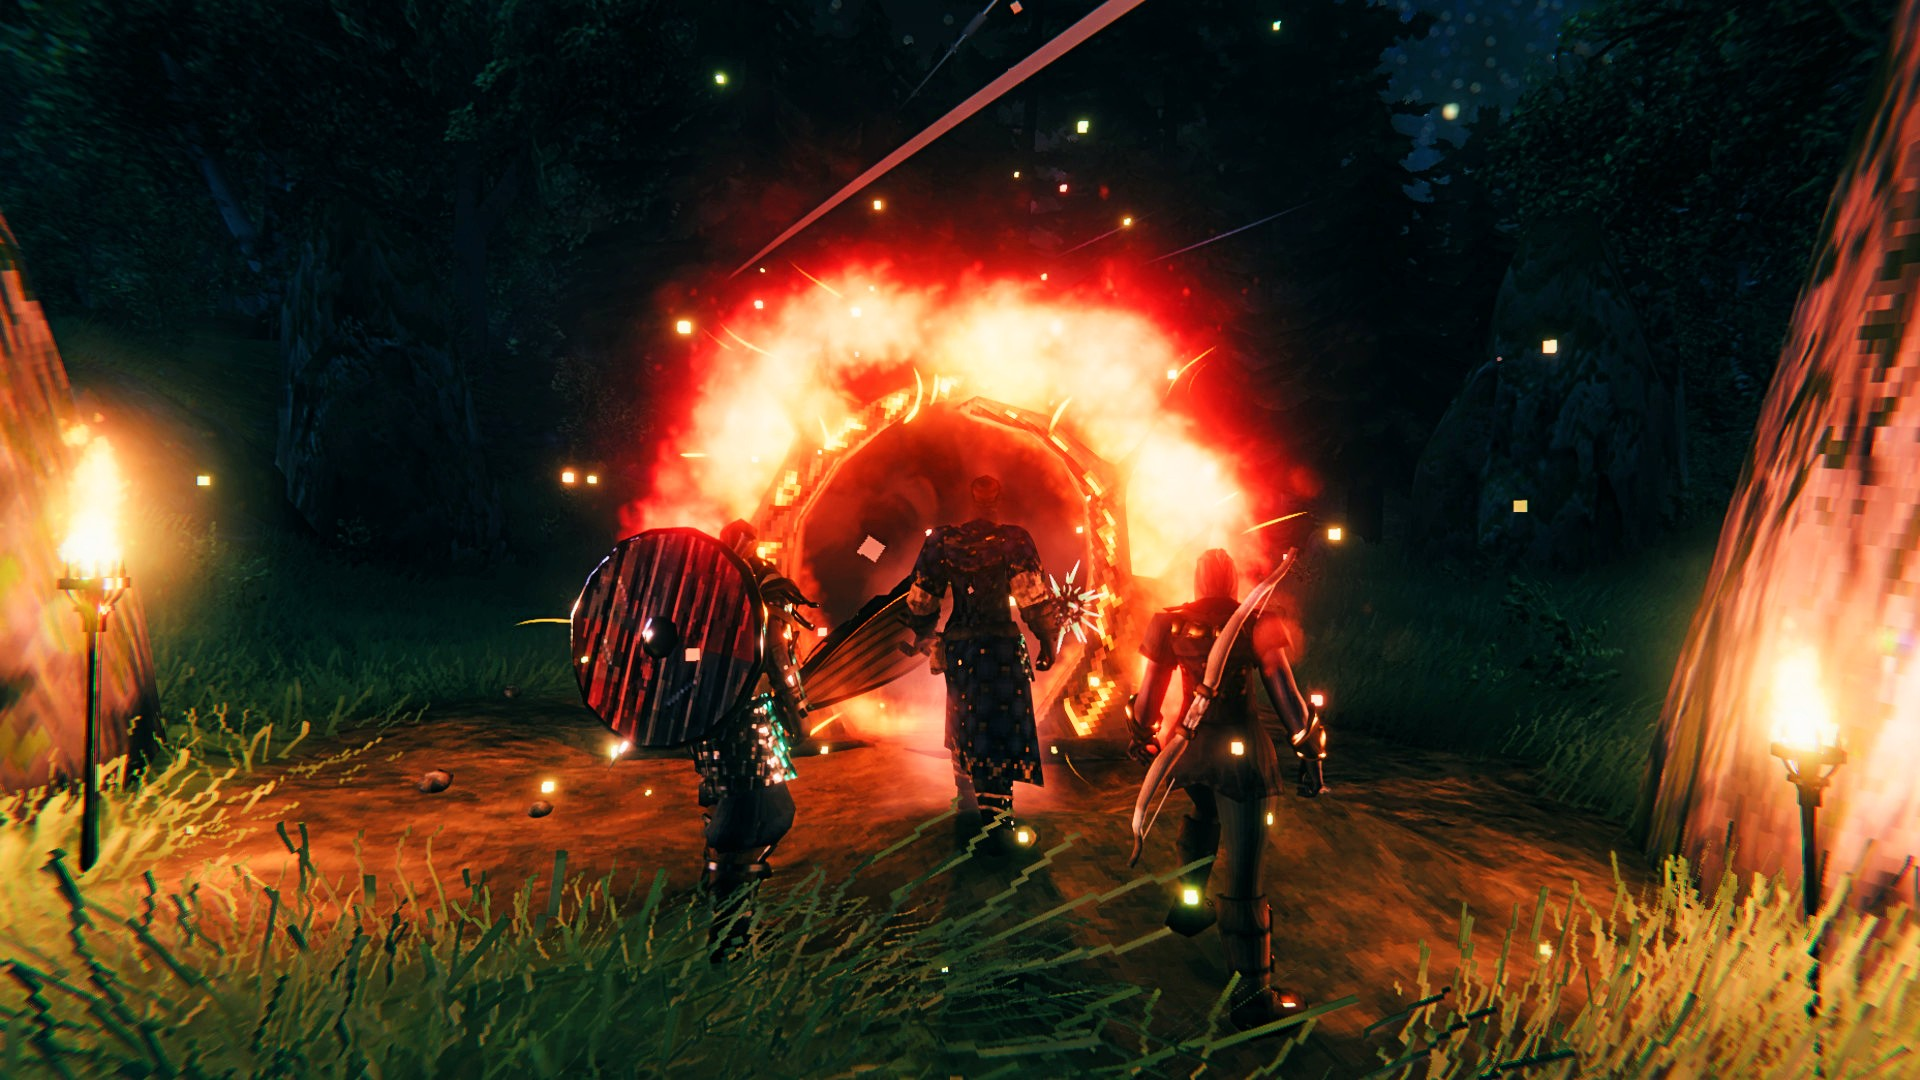 Want to take Valheim ore through a portal? The devs are open to the idea